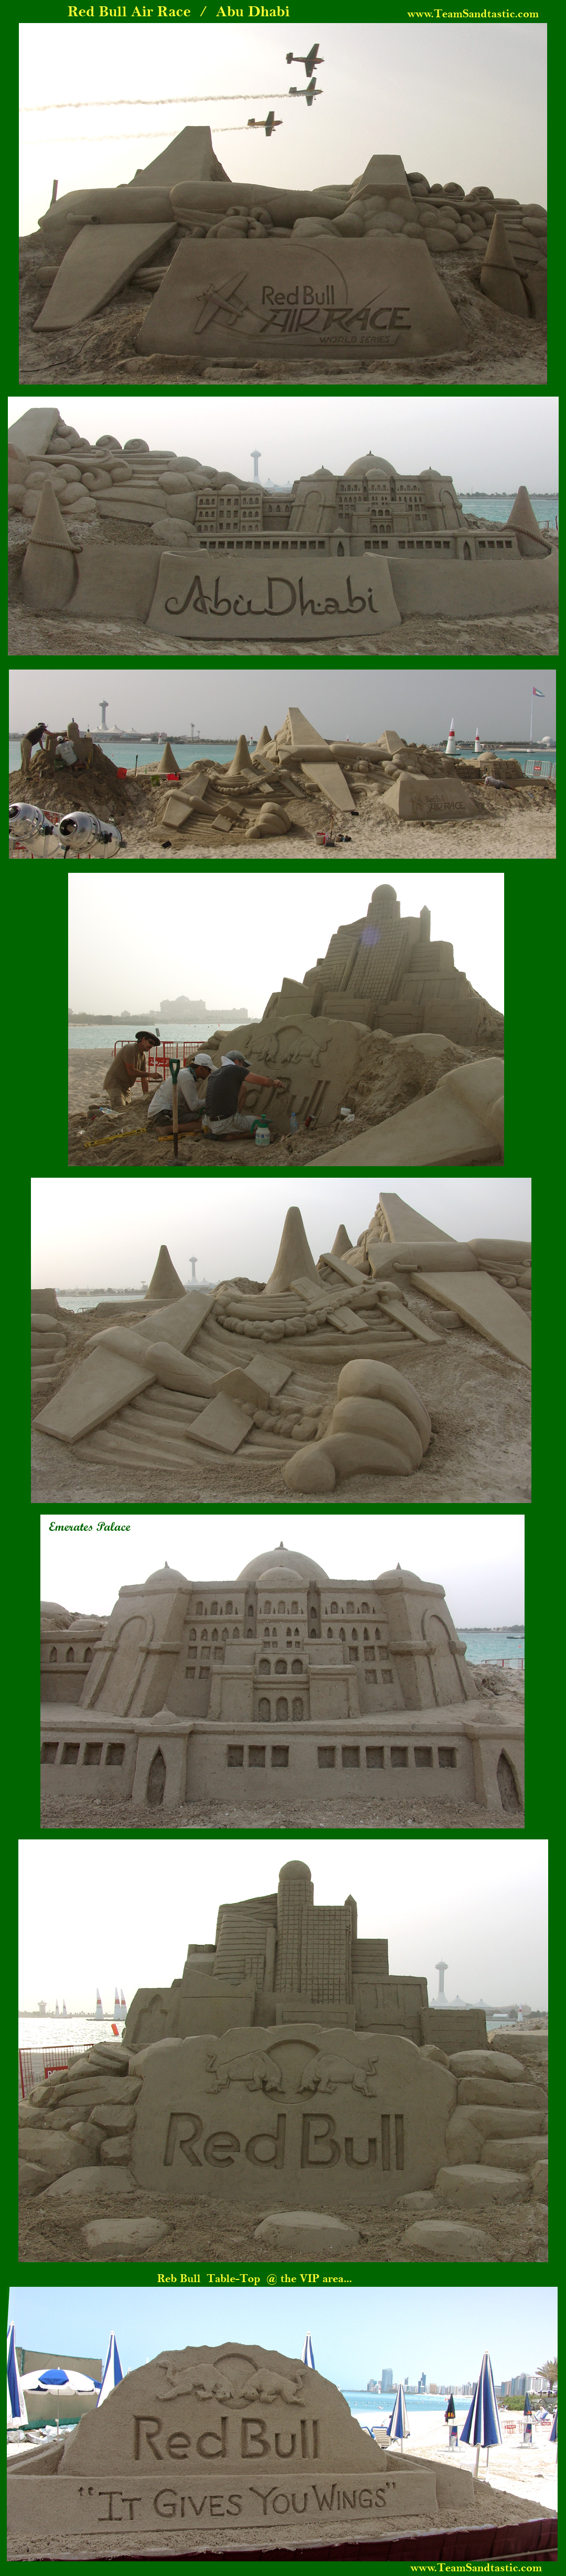 Sand Sculpture in Abu Dhabi